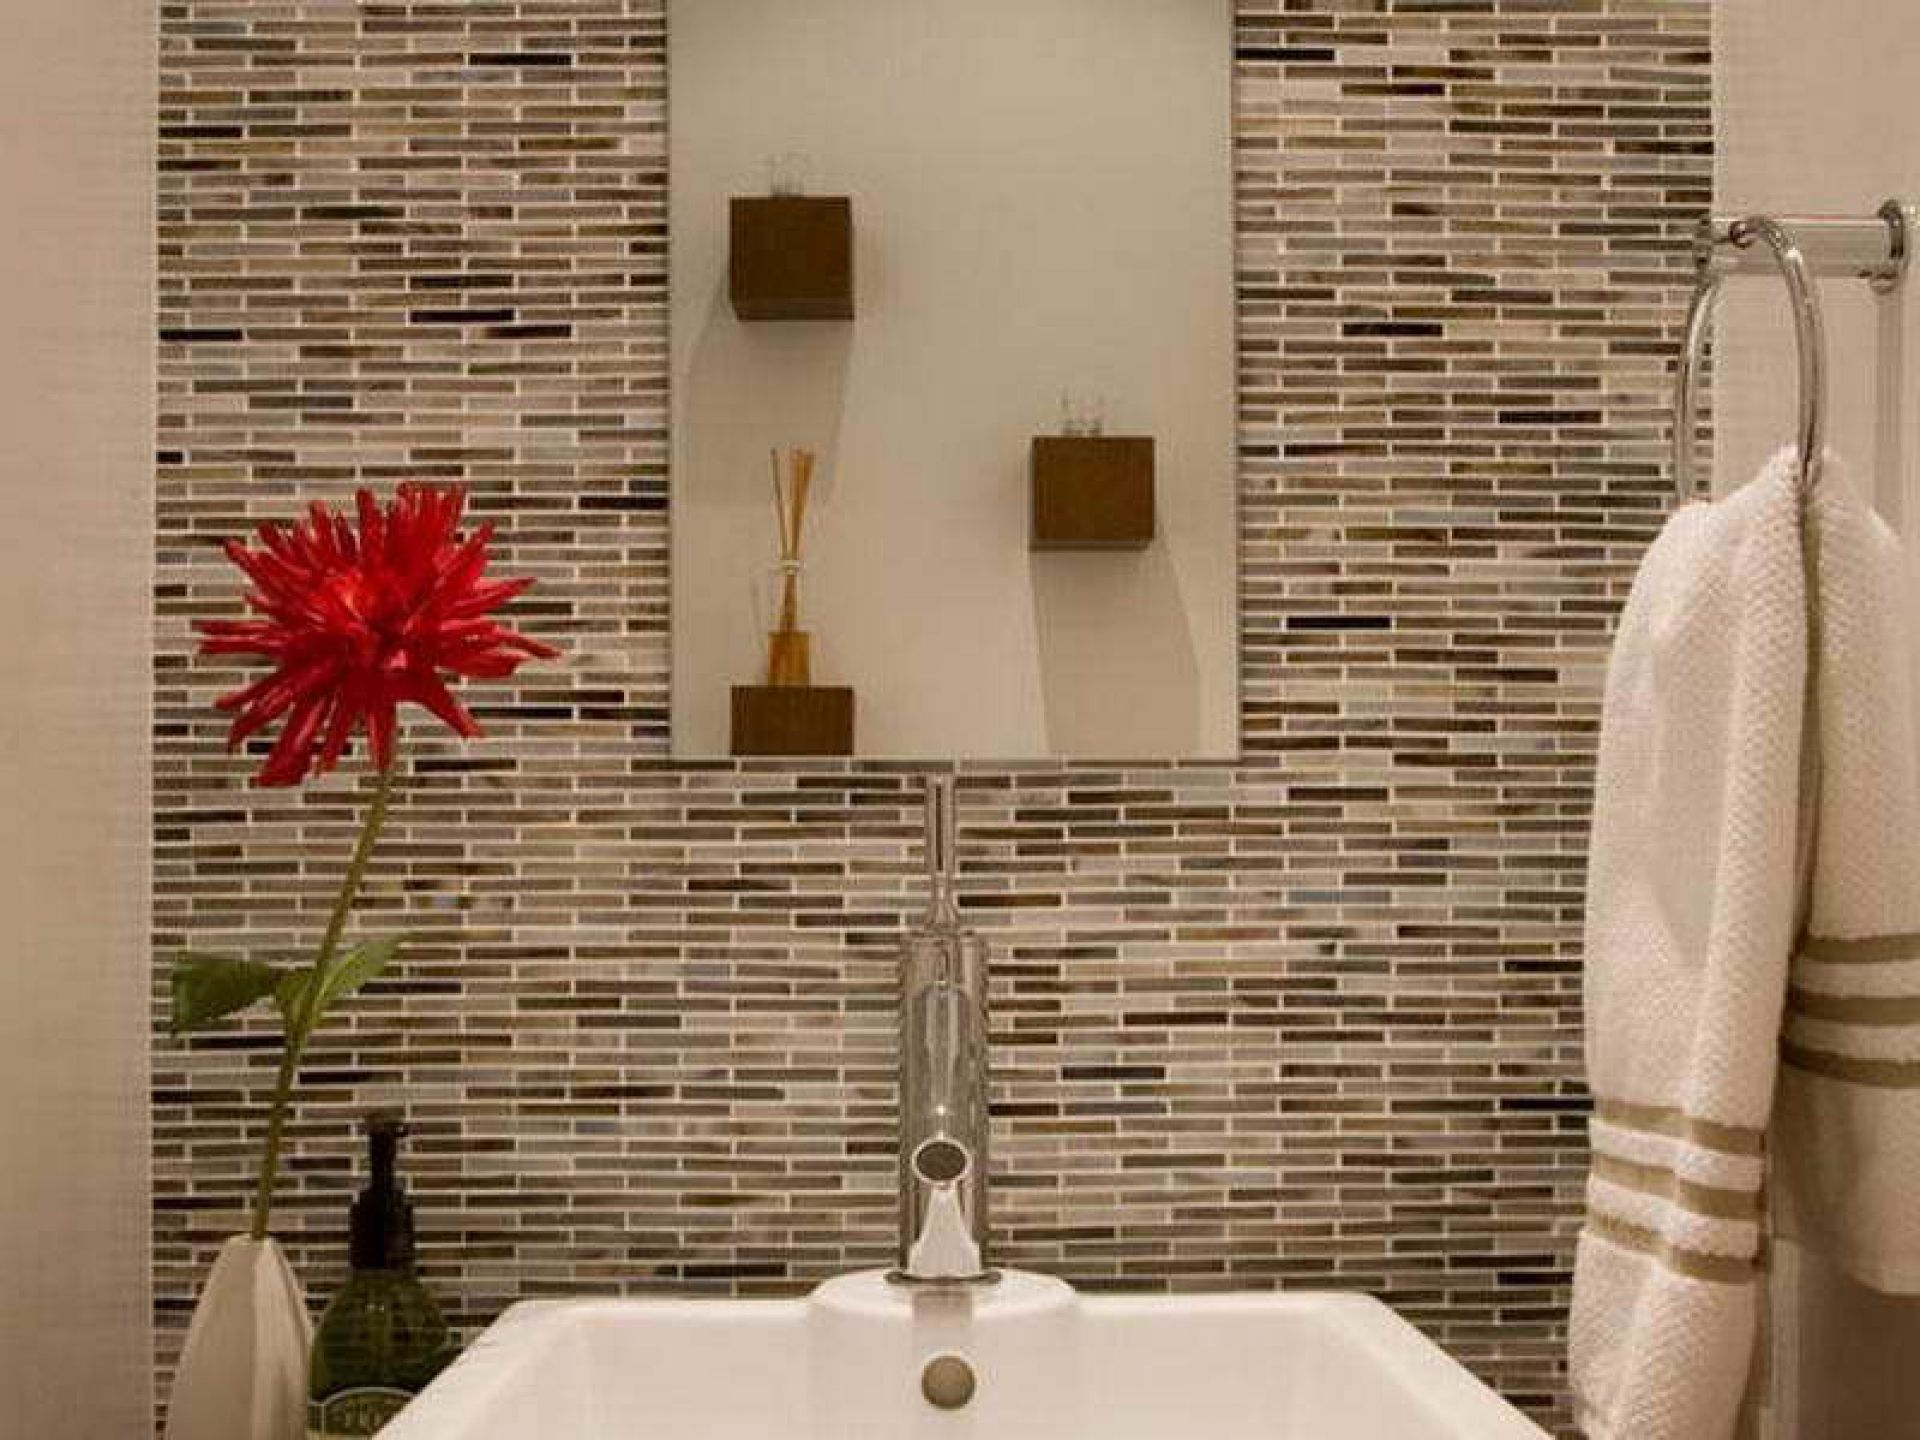 Cool Grey Mosaic Wall Tile With White Square Ceramic Washbasin And